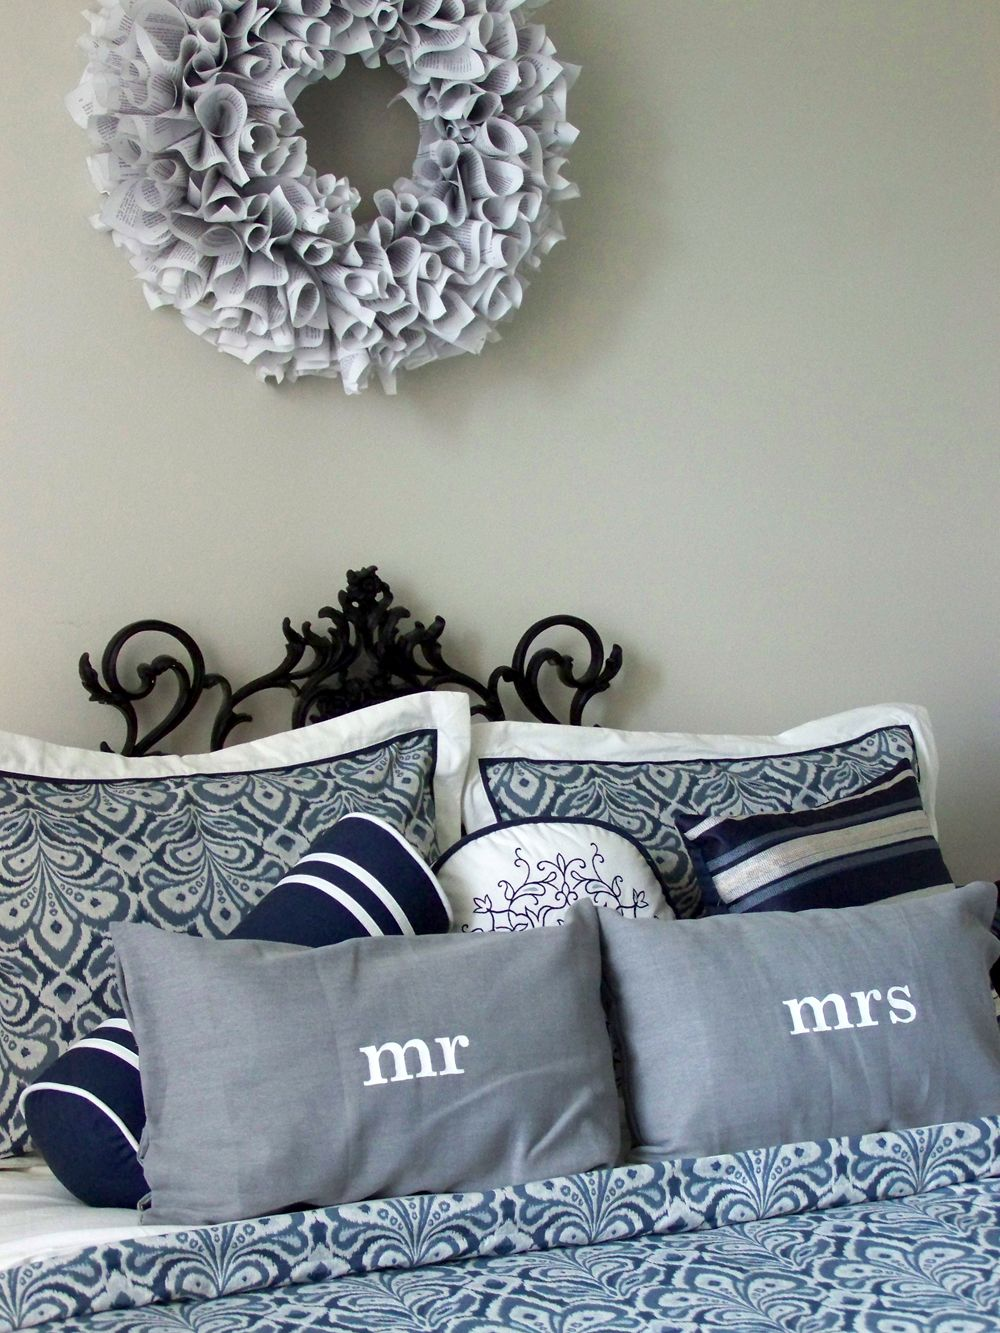 Stenciled Mr and Mrs pillows